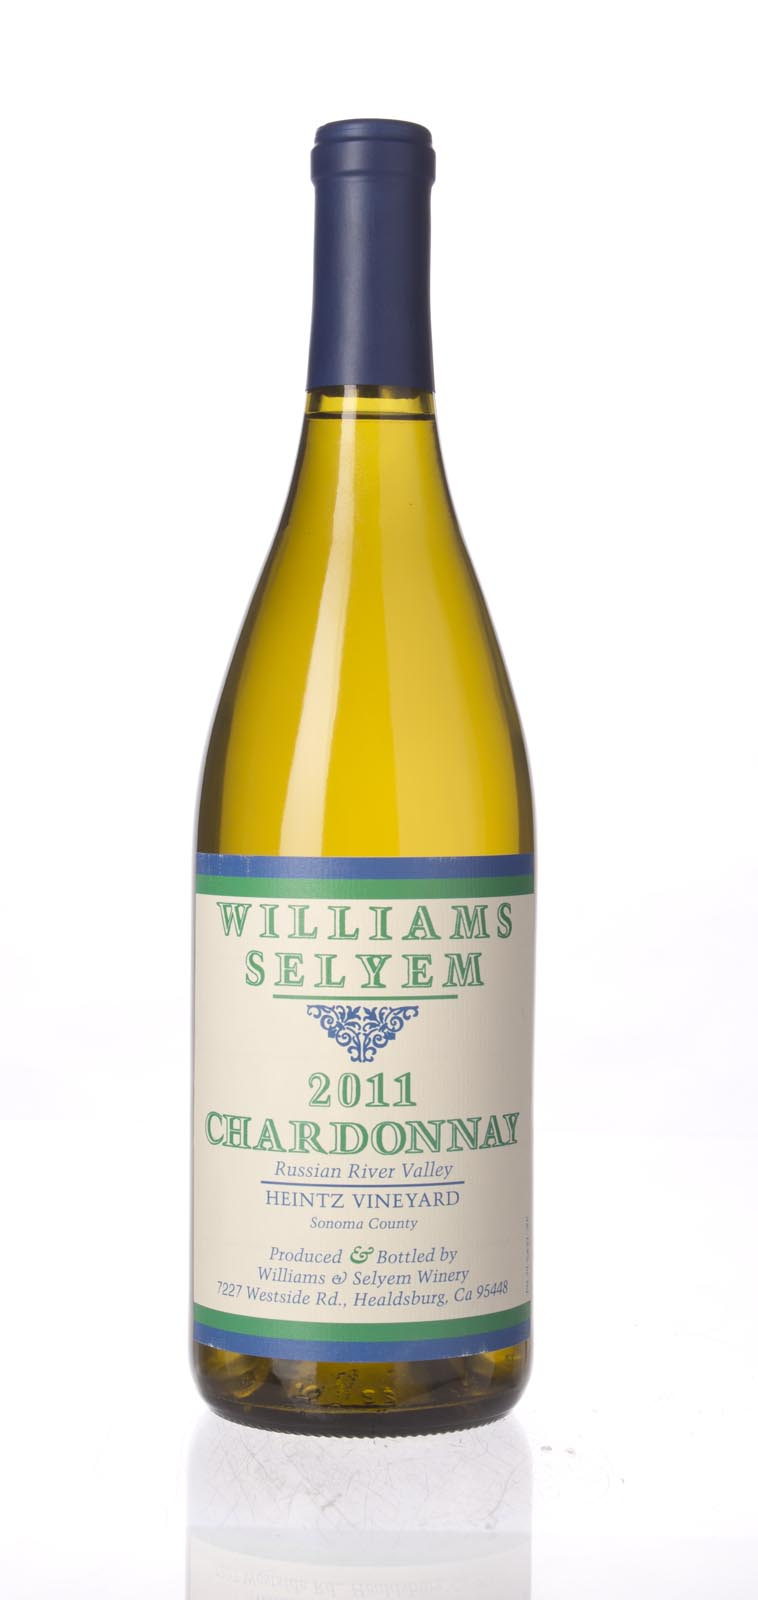 Williams Selyem Chardonnay Heintz Vineyard 2011, 750mL () from The BPW - Merchants of rare and fine wines.